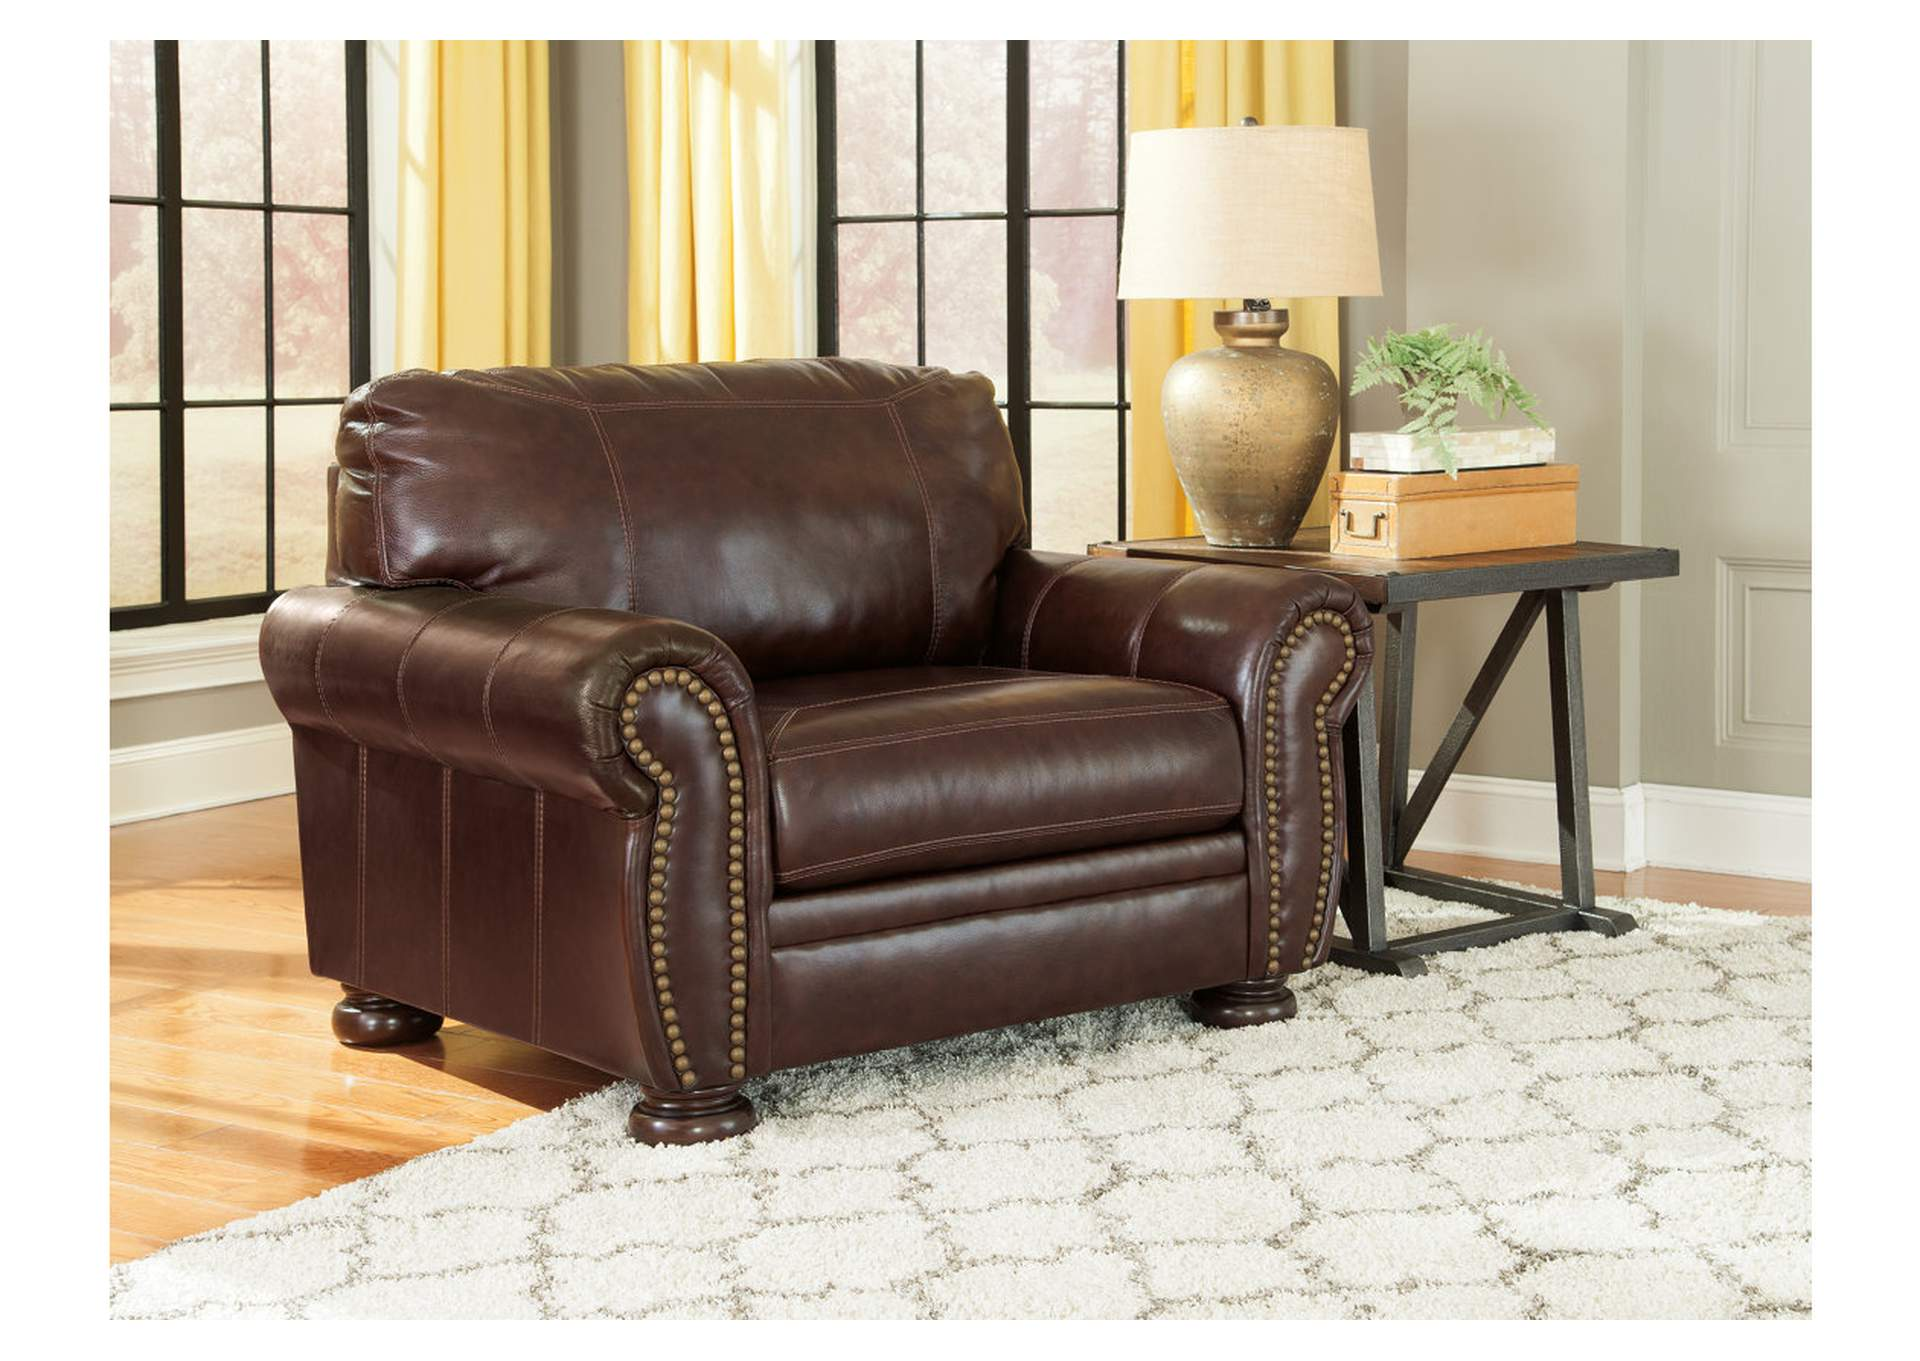 Austin 39 S Couch Potatoes Furniture Stores Austin Texas Banner Coffee Chair And A Half